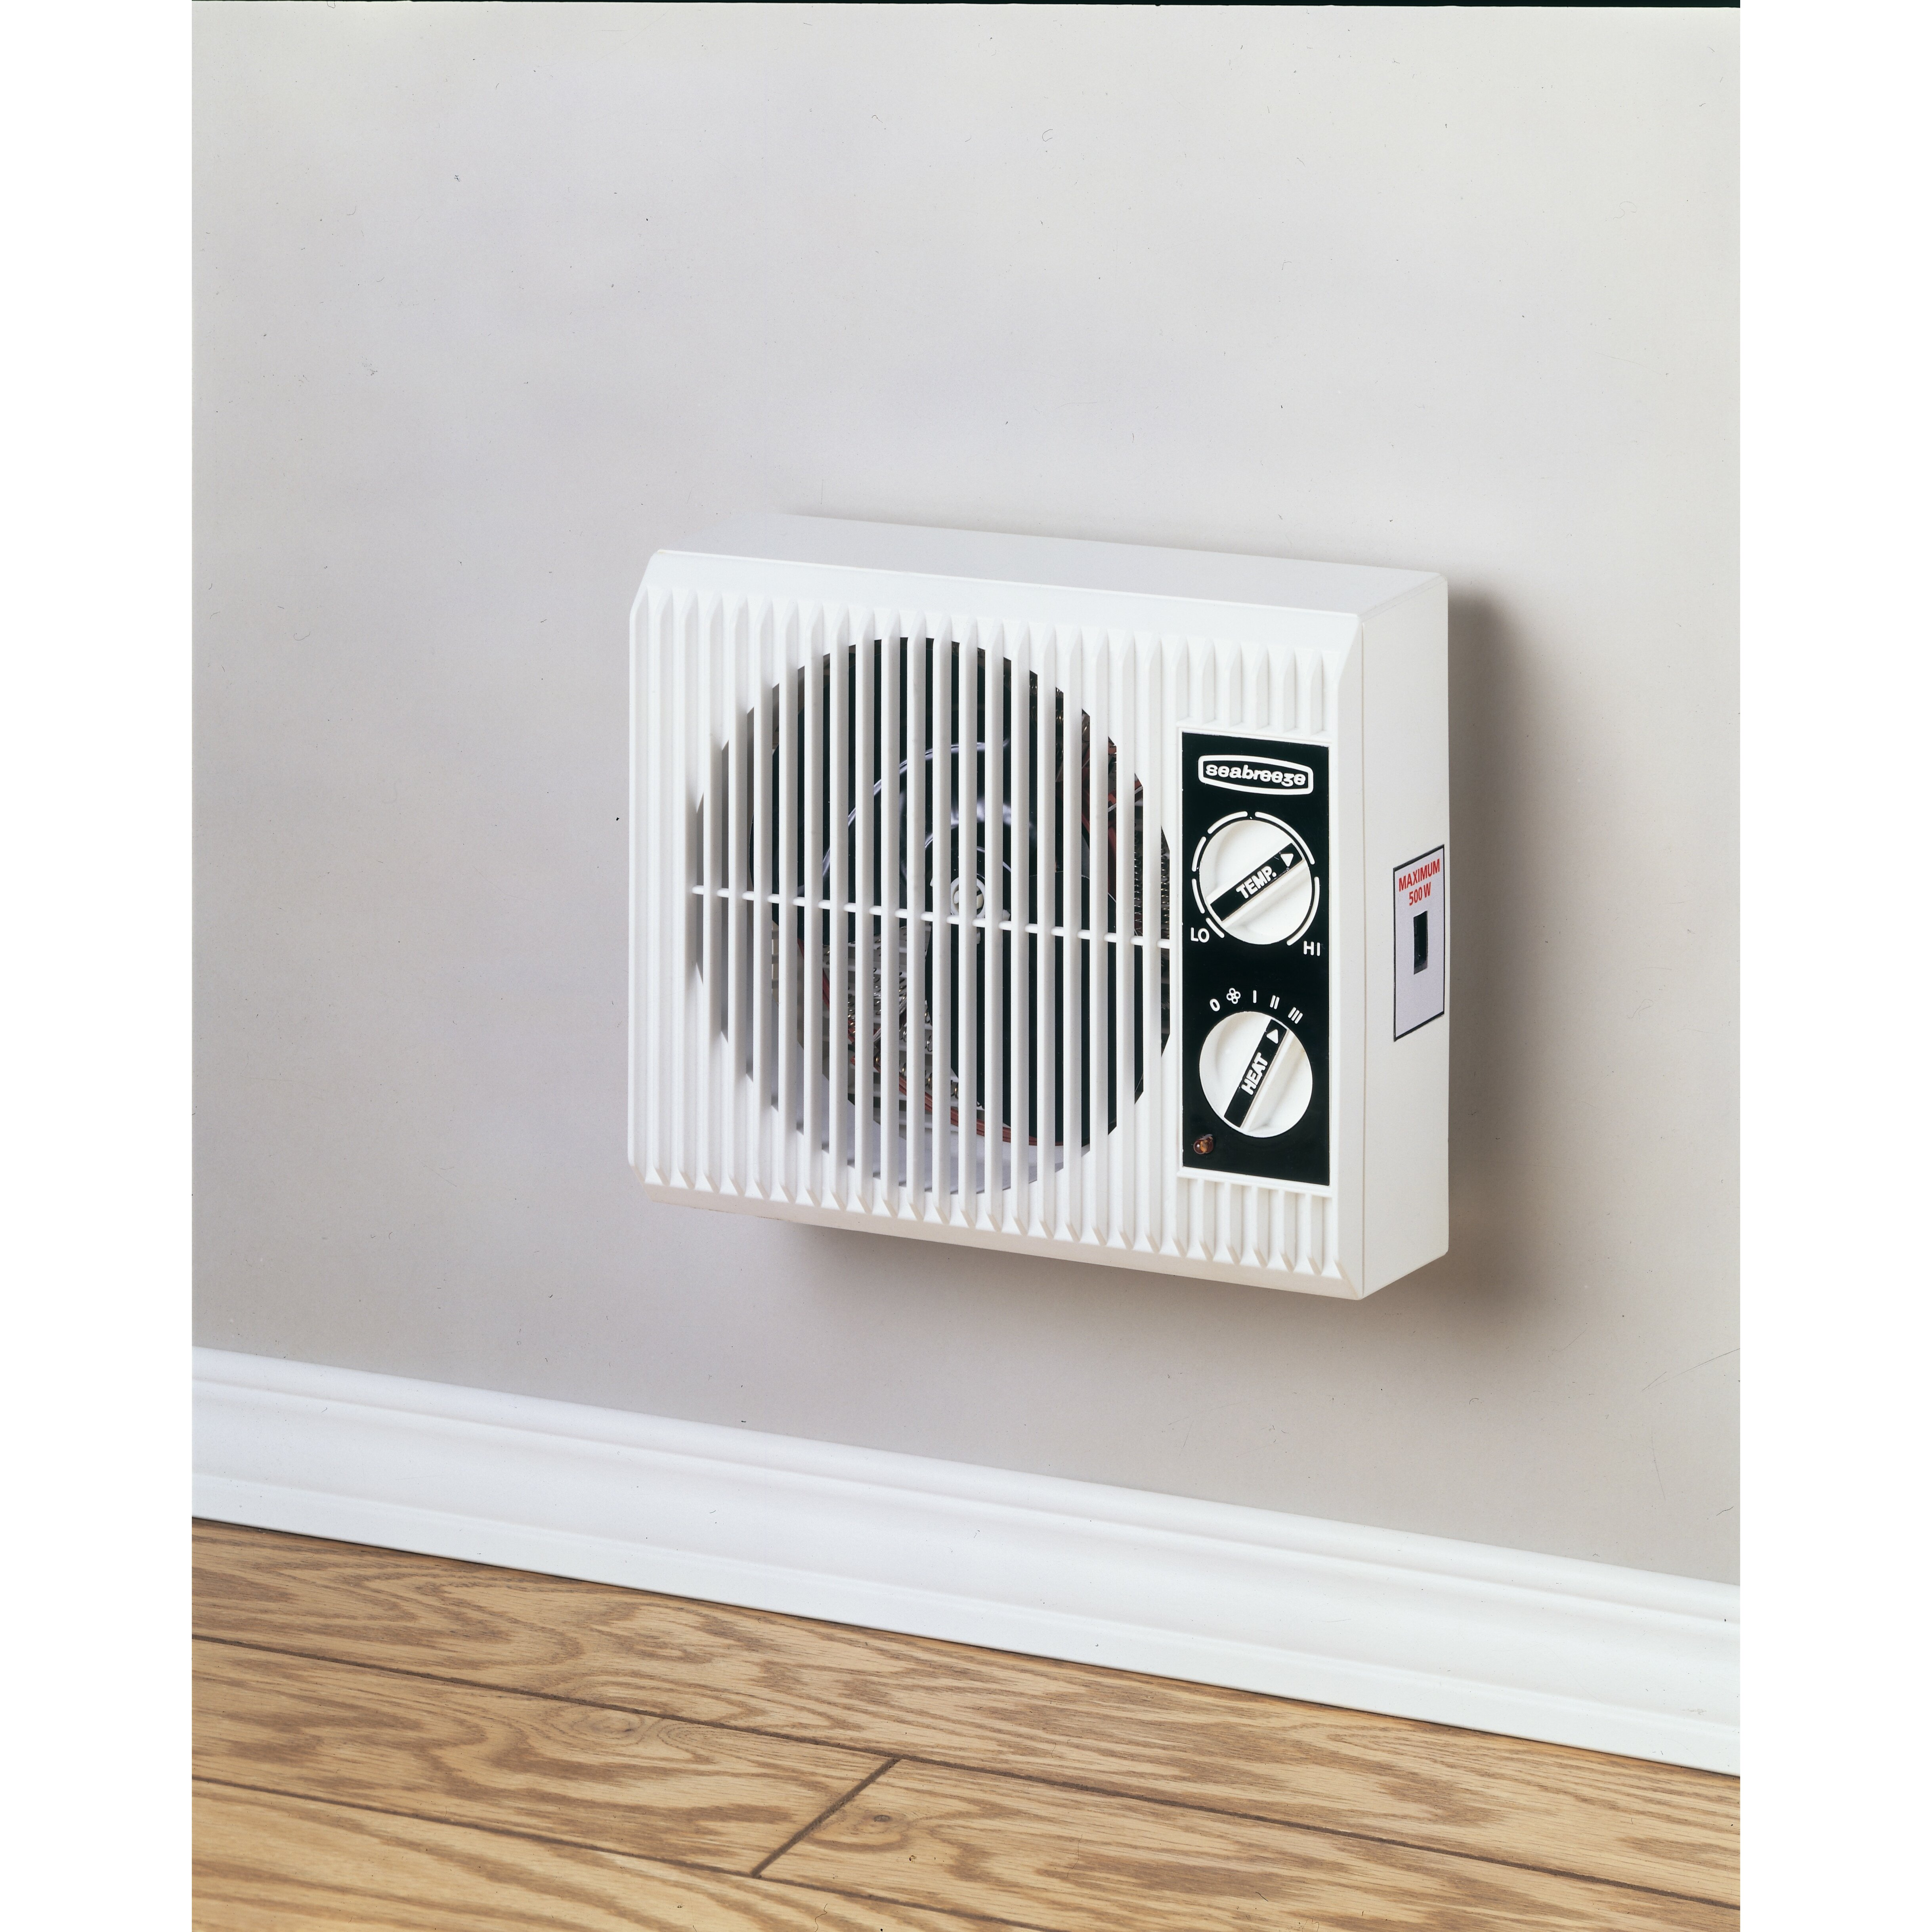 Bathroom Electric Heaters Seabreeze Electric Off The Wall Bed Bathroom Heater Reviews